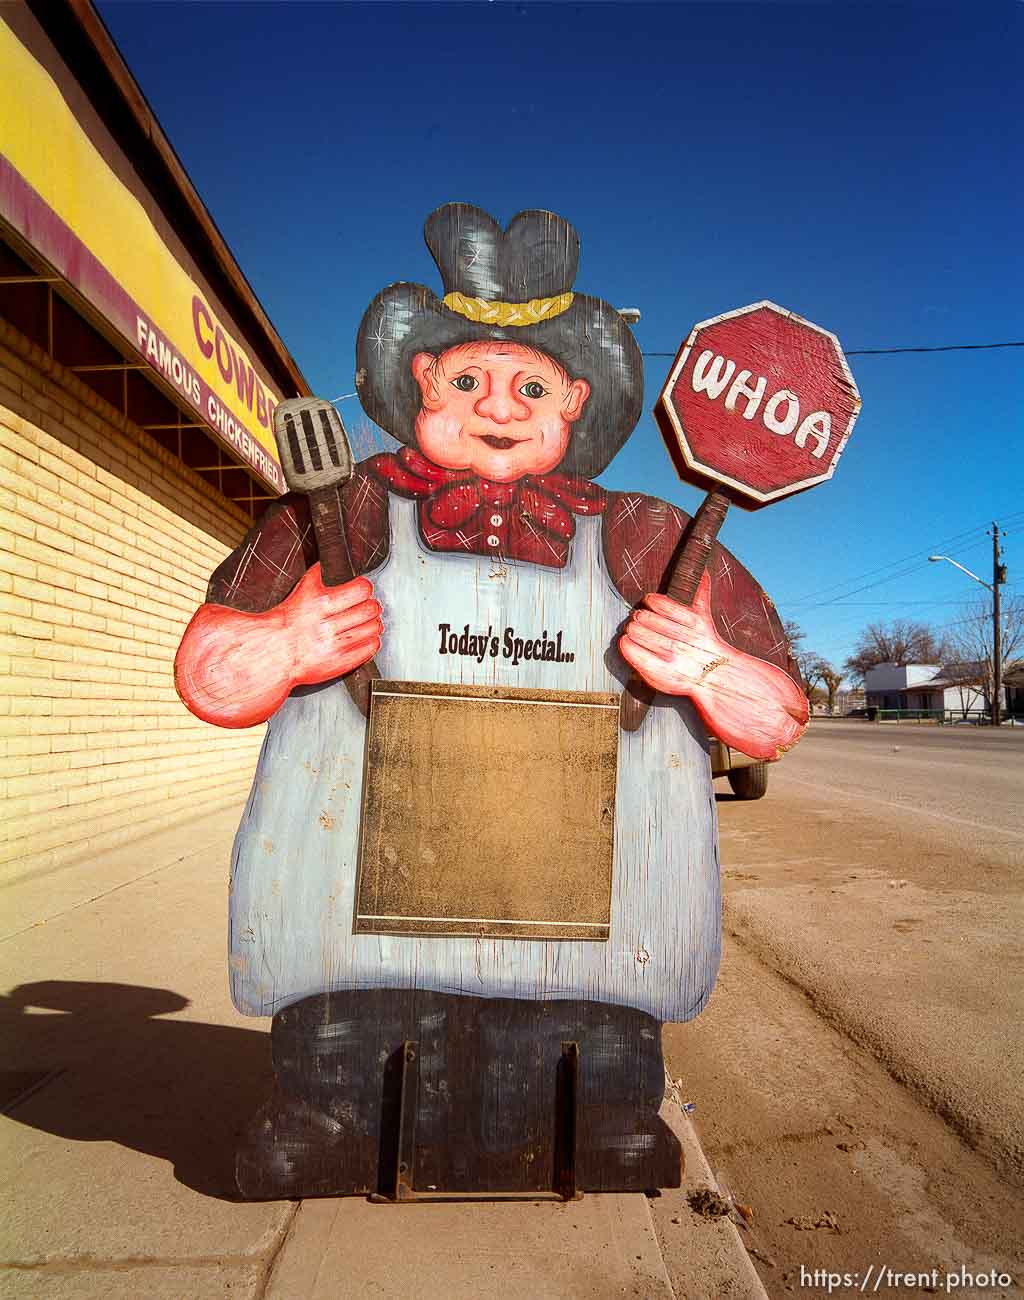 Cowboy cutout in front of roadside cafe.